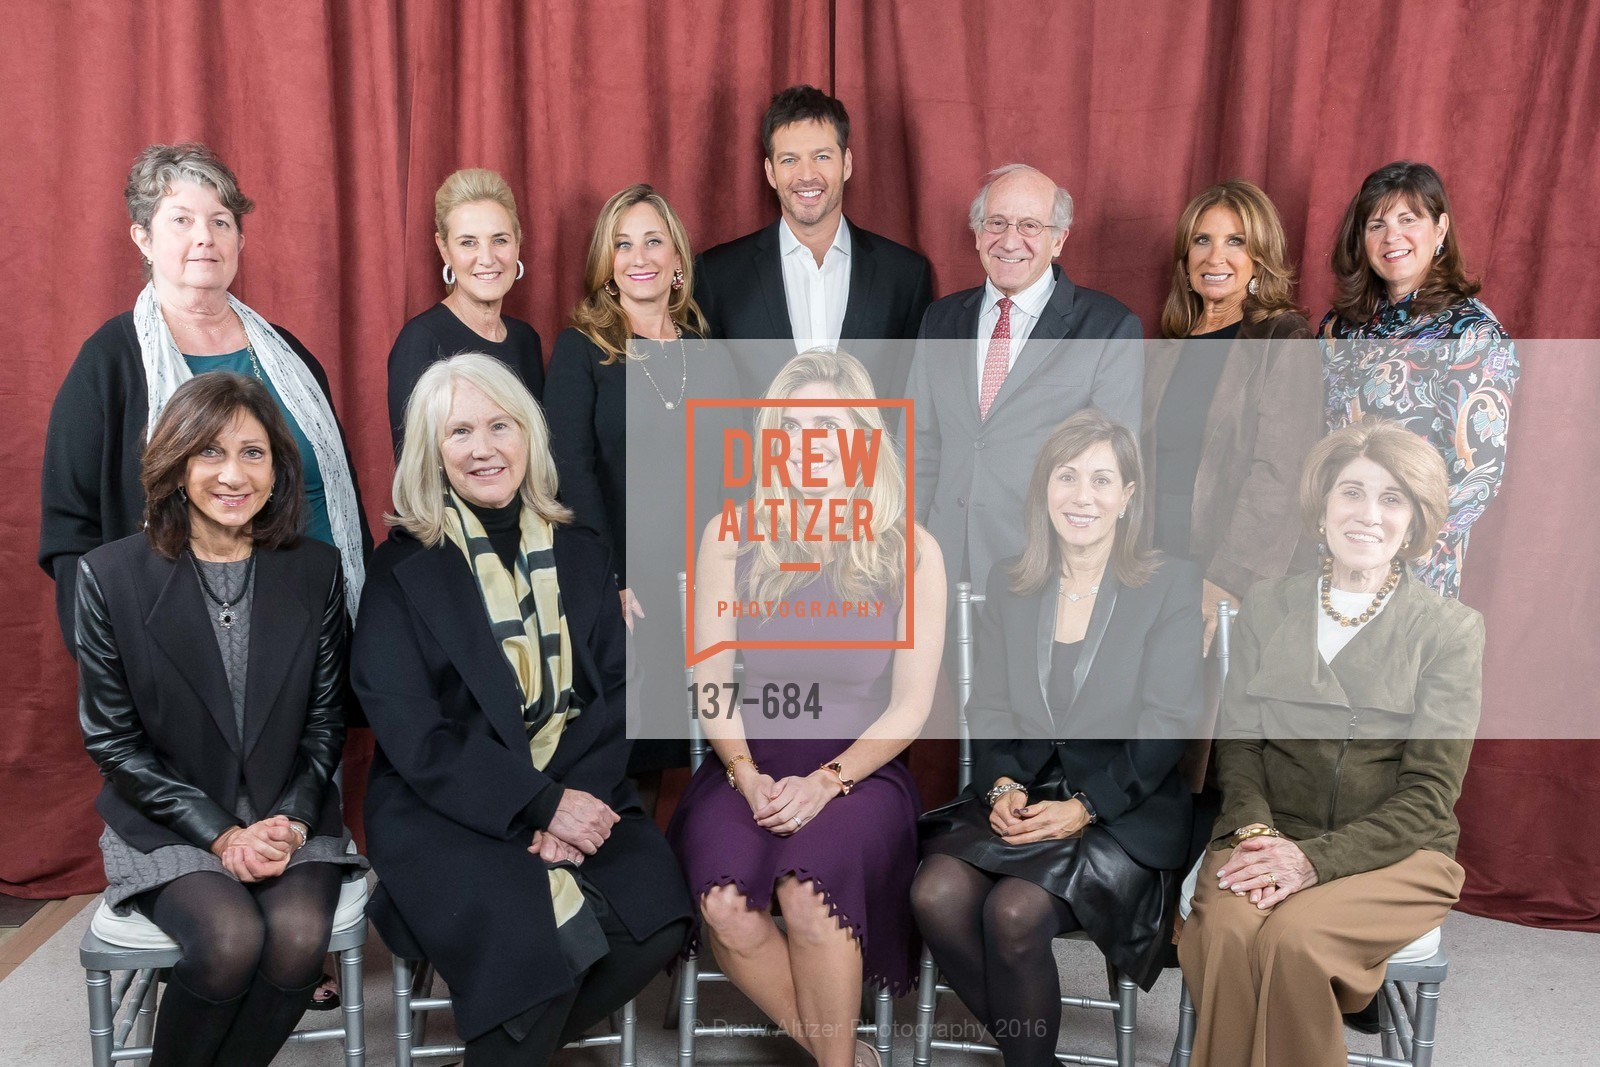 Laurie Kraus Lacob, Deborah Berek, Ann Doerr, Lisa Goldman, Dianne Taube, Suzanne Crandall, Harry Connick Jr., Jonathan Berek, Susie Fox, Lisa Schatz, Fran Codispoti, Jane Solomon, Under One Umbrella, Sharon Heights Golf and Country Club, January 13th, 2016,Drew Altizer, Drew Altizer Photography, full-service event agency, private events, San Francisco photographer, photographer California